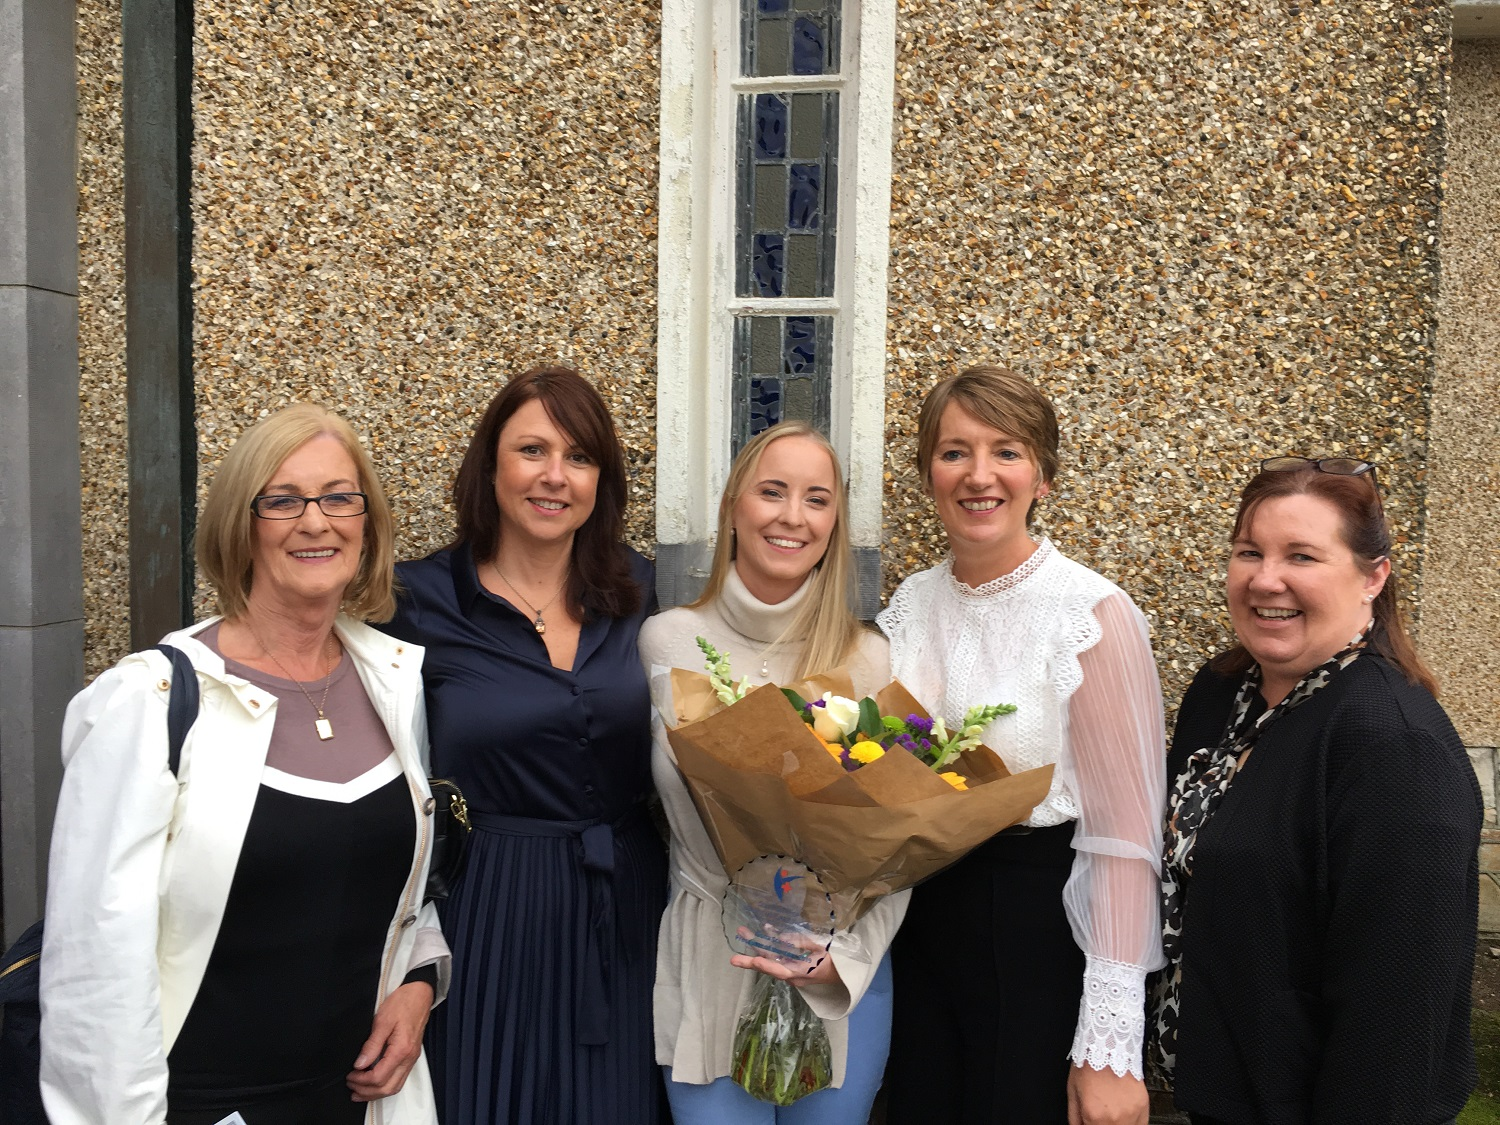 Mrs Scanlon (mother of the winner), Ms Gwen Daniels Director of Nursing, UPMC Whitfield, Ms Fiona Scanlon Preceptor of the Year (General), UHW, Dr Sara Kennedy WIT, Ms Trish Lane Director of Clinical Services, UPMC Whitfield